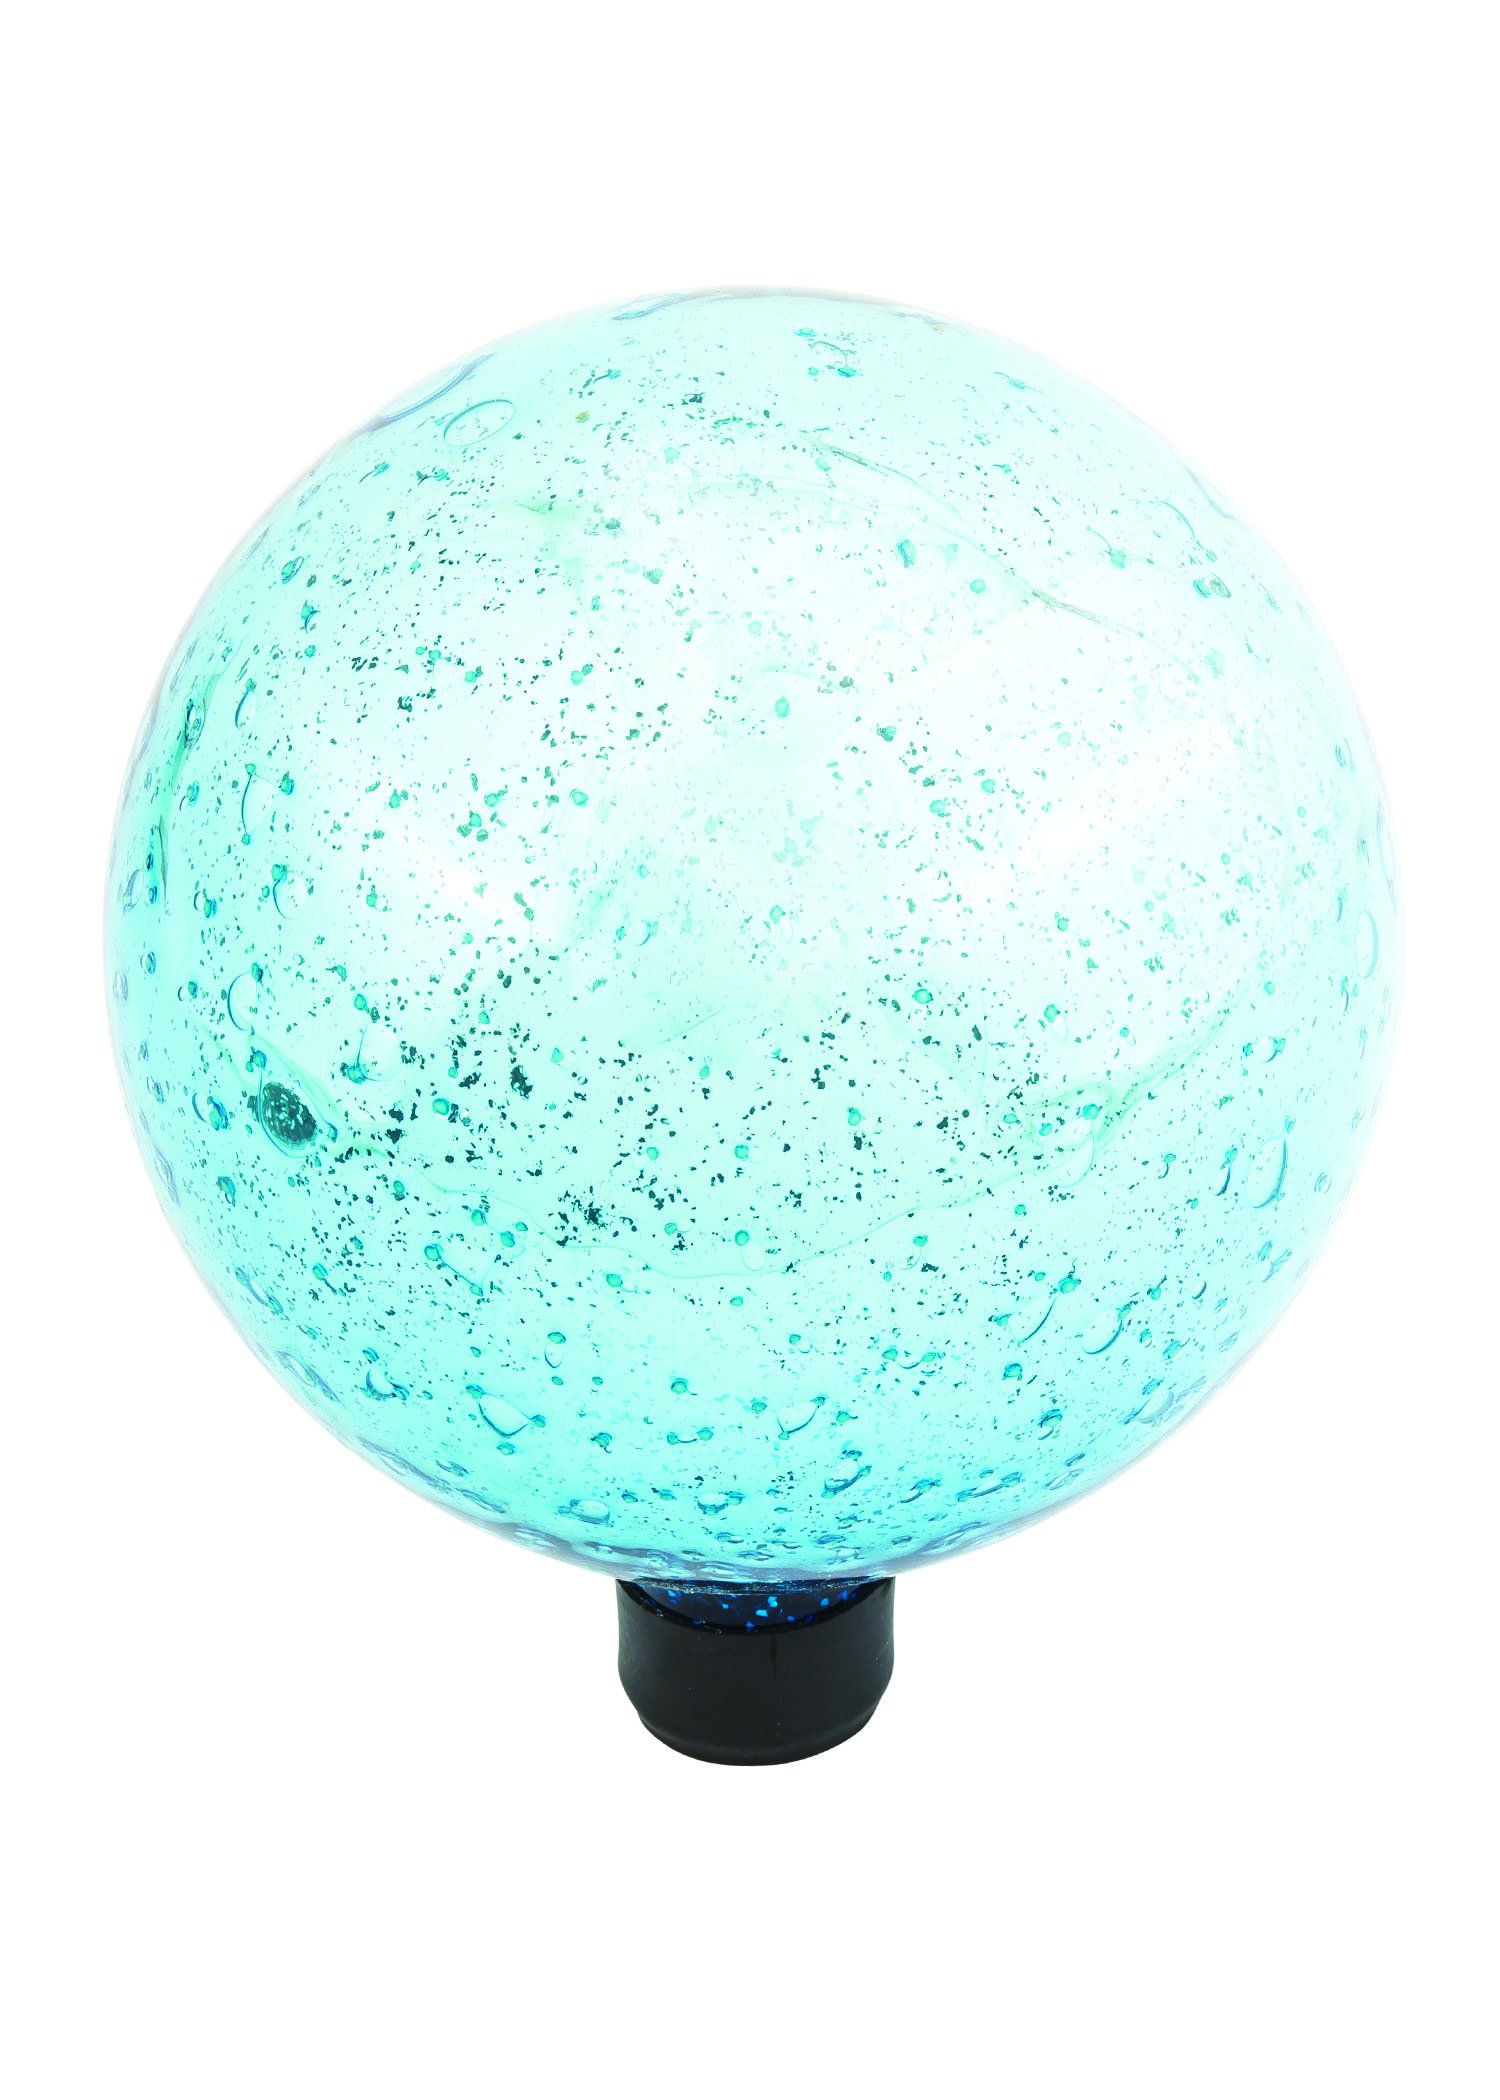 Russco III GD137227 Glass Gazing Ball, 10'', Blue with Silver